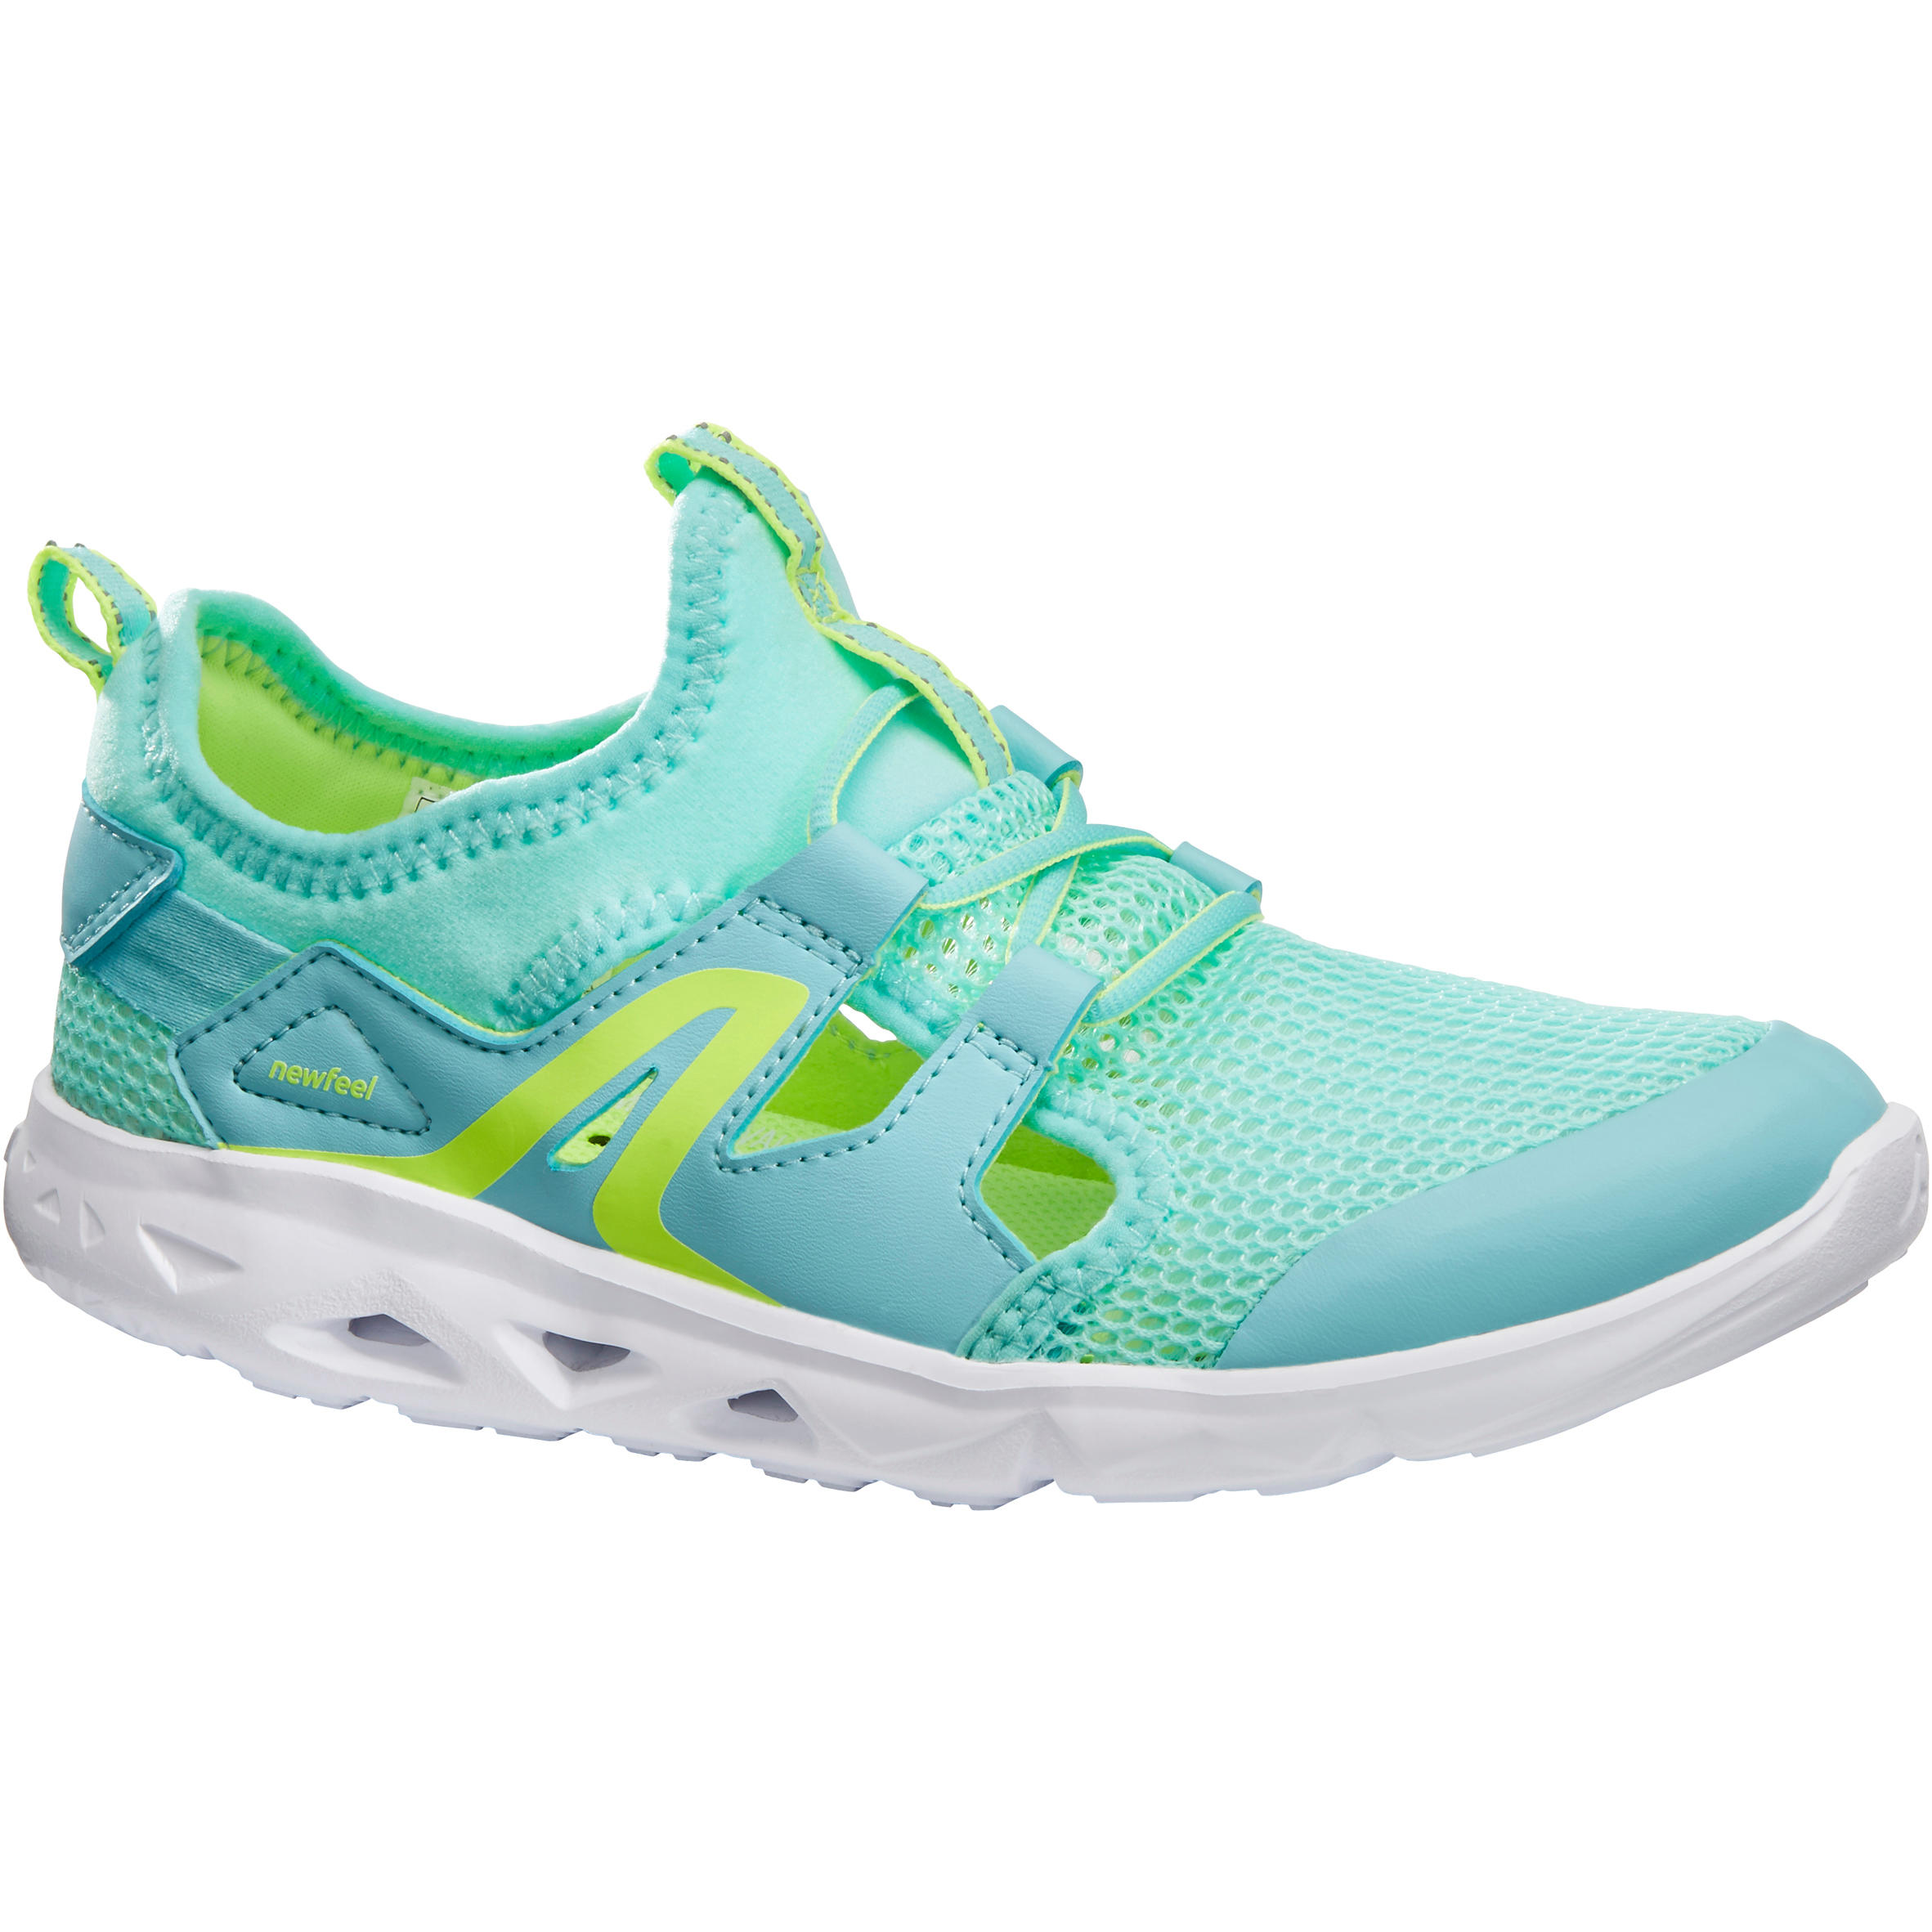 Kids Shoes online at Decathlon India